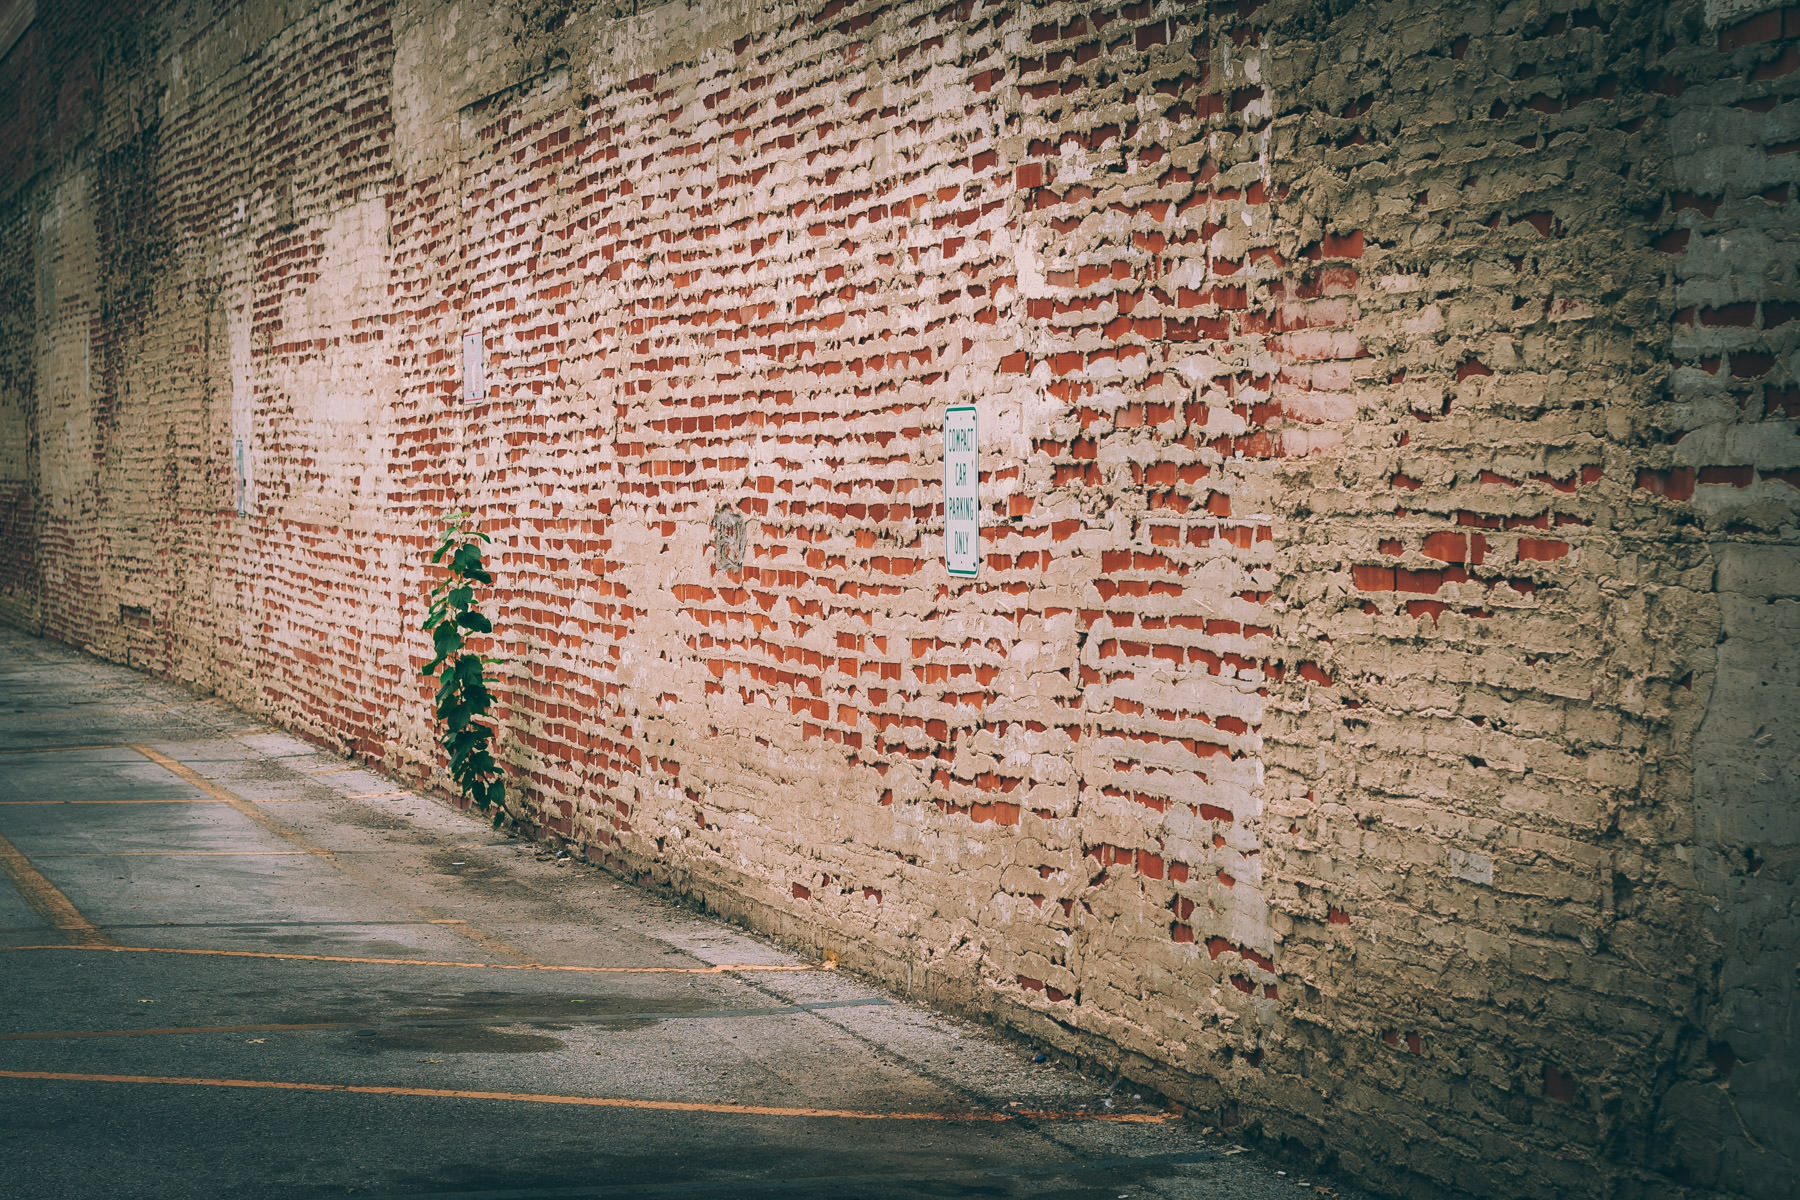 An old brick wall in Fort Worth, Texas.